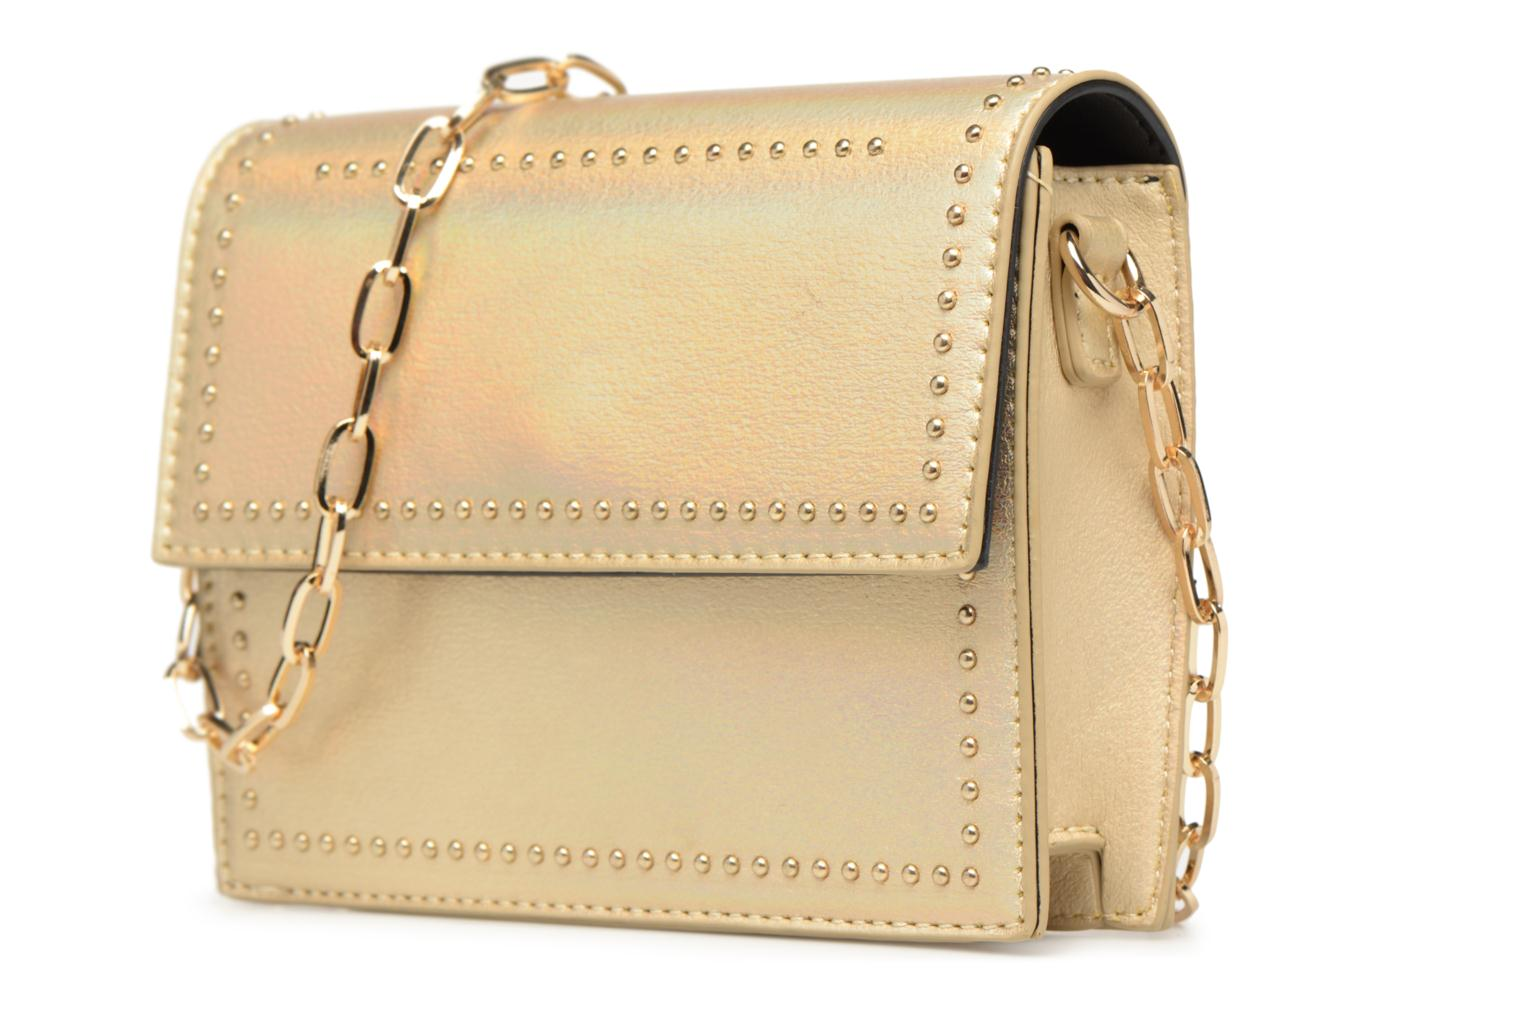 Handtassen Street Level Mettalic chainstrap crossbody Goud en brons model